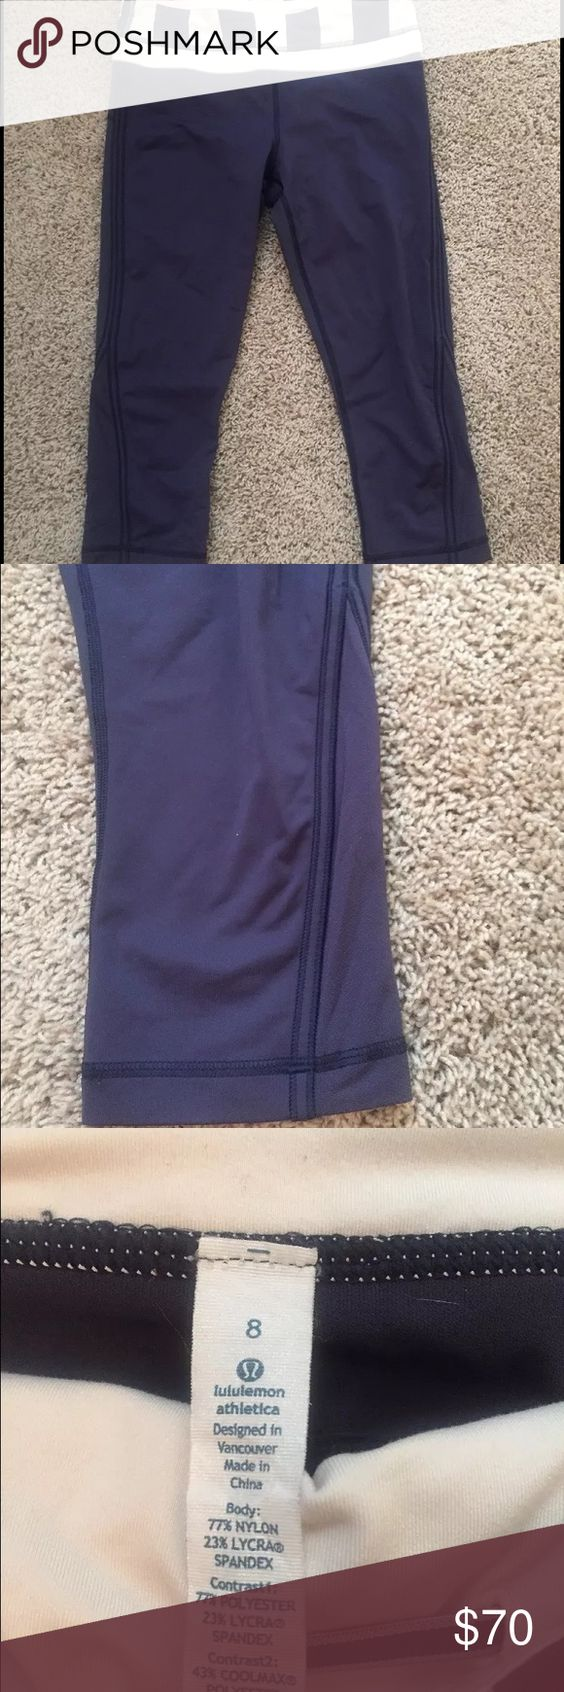 Lulu lemon cropped pant size 8 Size 8 Fantastic cropped workout pants. RN106259 CA 35801. Great to work out in or casual night out. Beautiful navy/plum color with ivory color block waist band. Worn once for 1 hour they were too big. lululemon athletica Pants Ankle & Cropped